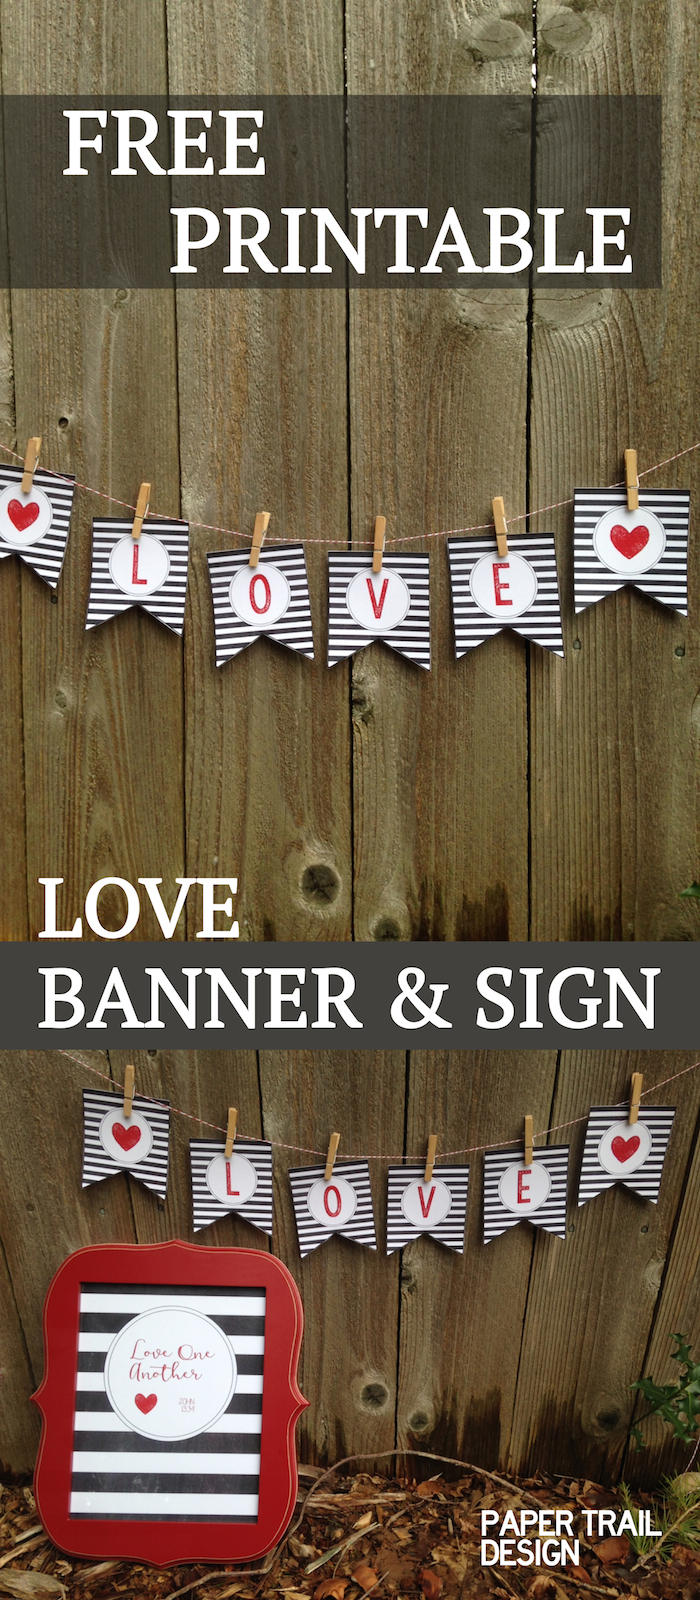 Love-Banner-&-Sign-Pinterest